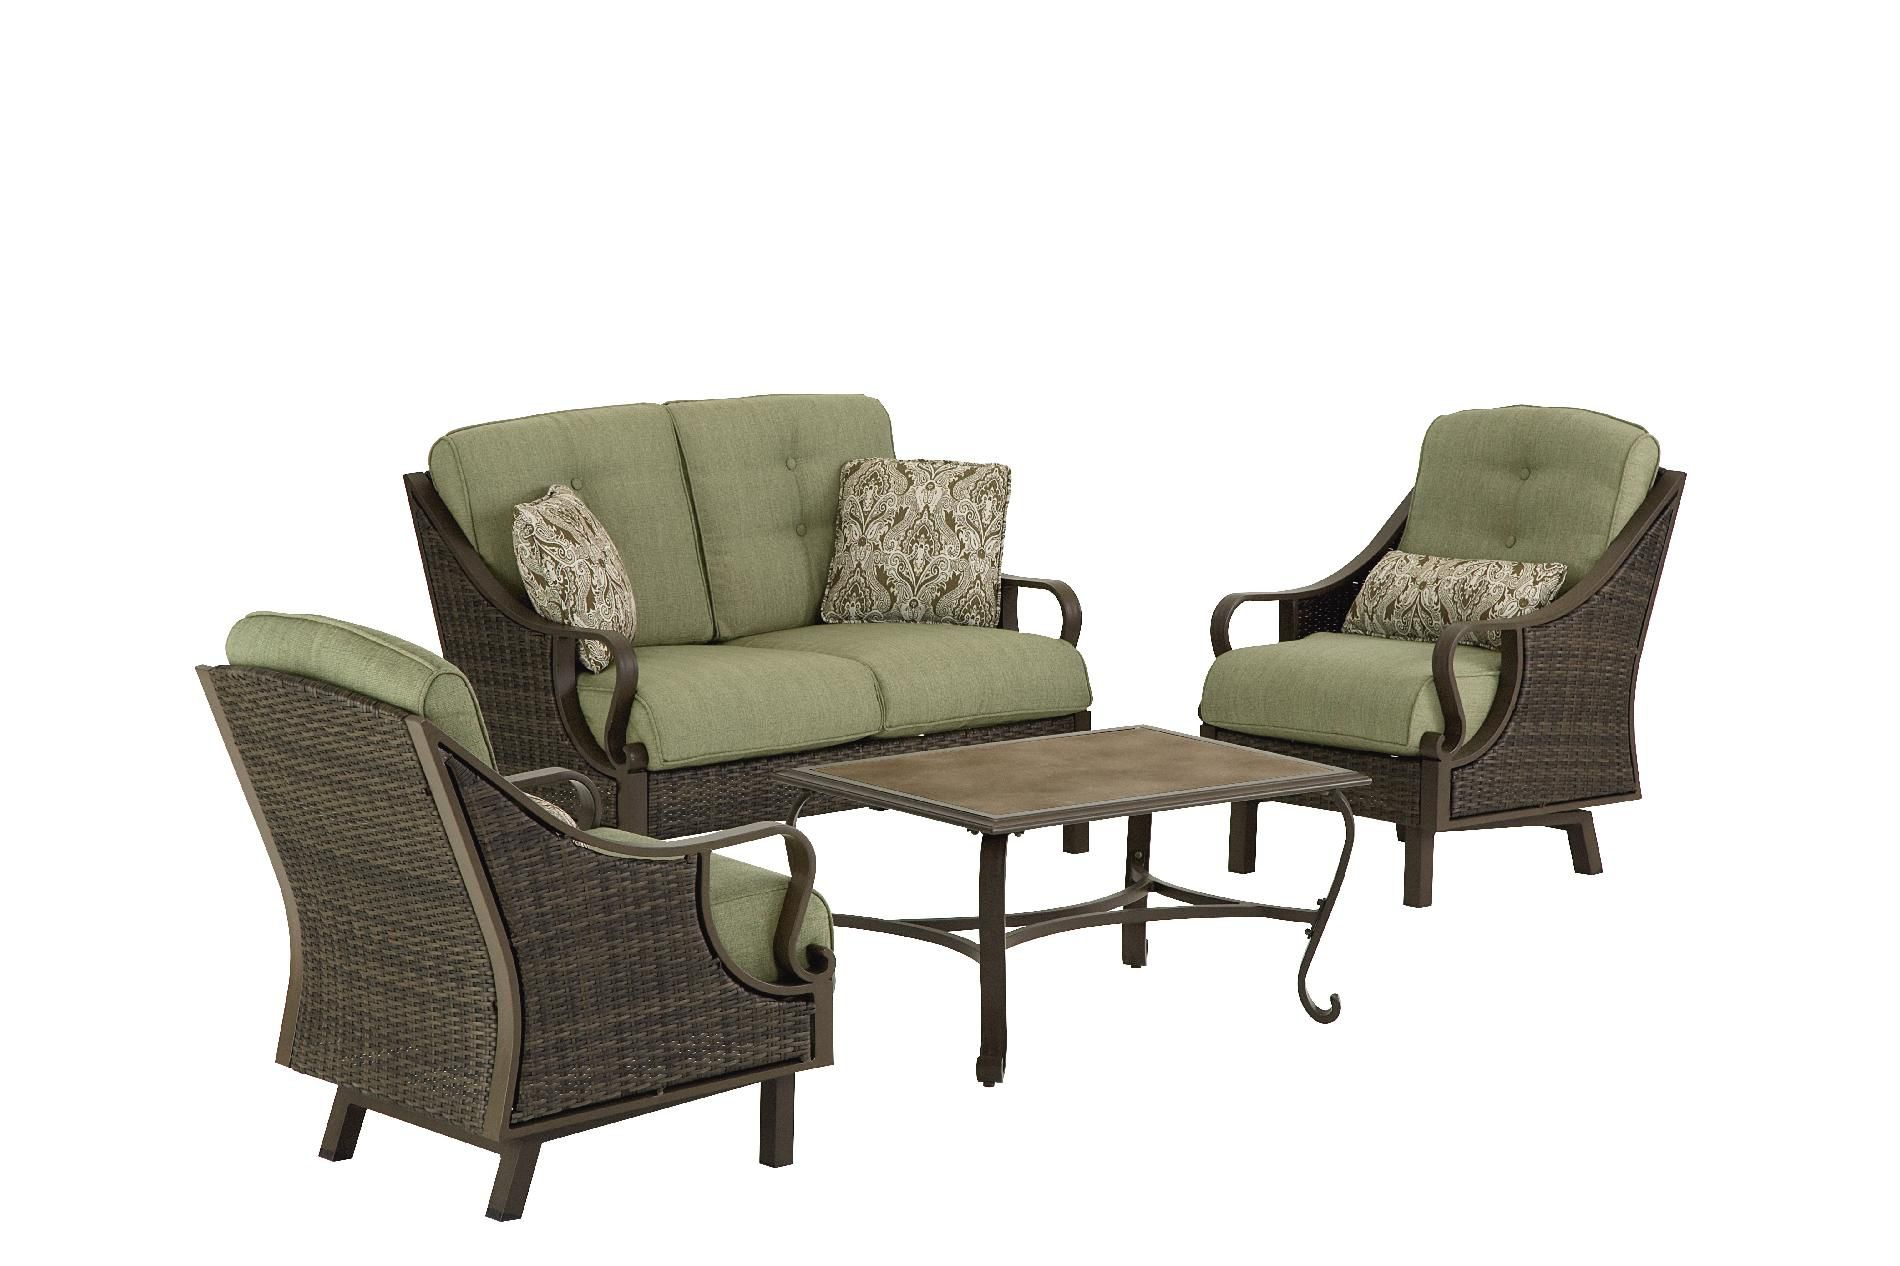 La-Z-Boy Outdoor Peyton 4 Pc. Seating Set